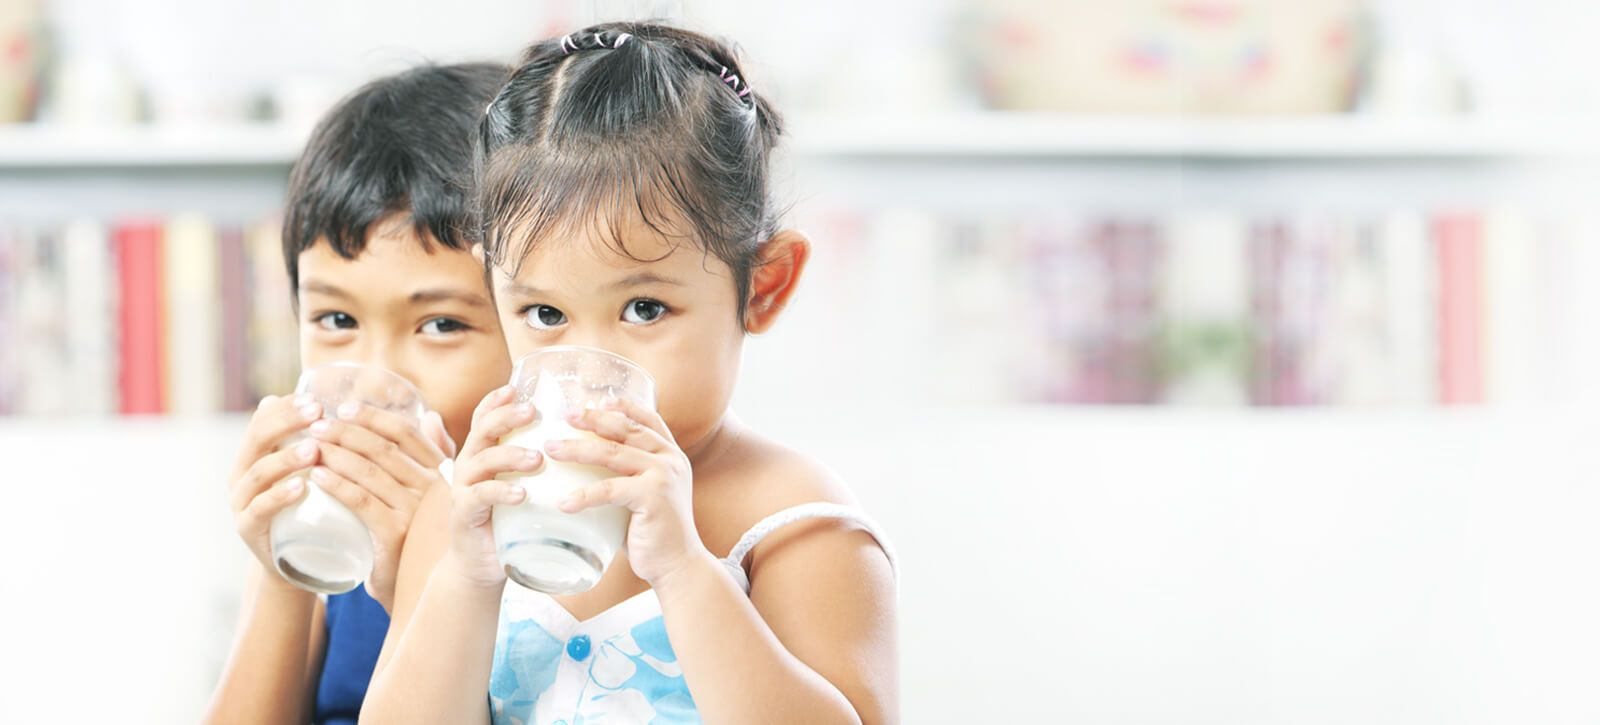 Early Life Nutrition - Growing Up Child - Formulated Milk Products - Danone Dumex Malaysia #childnutrition